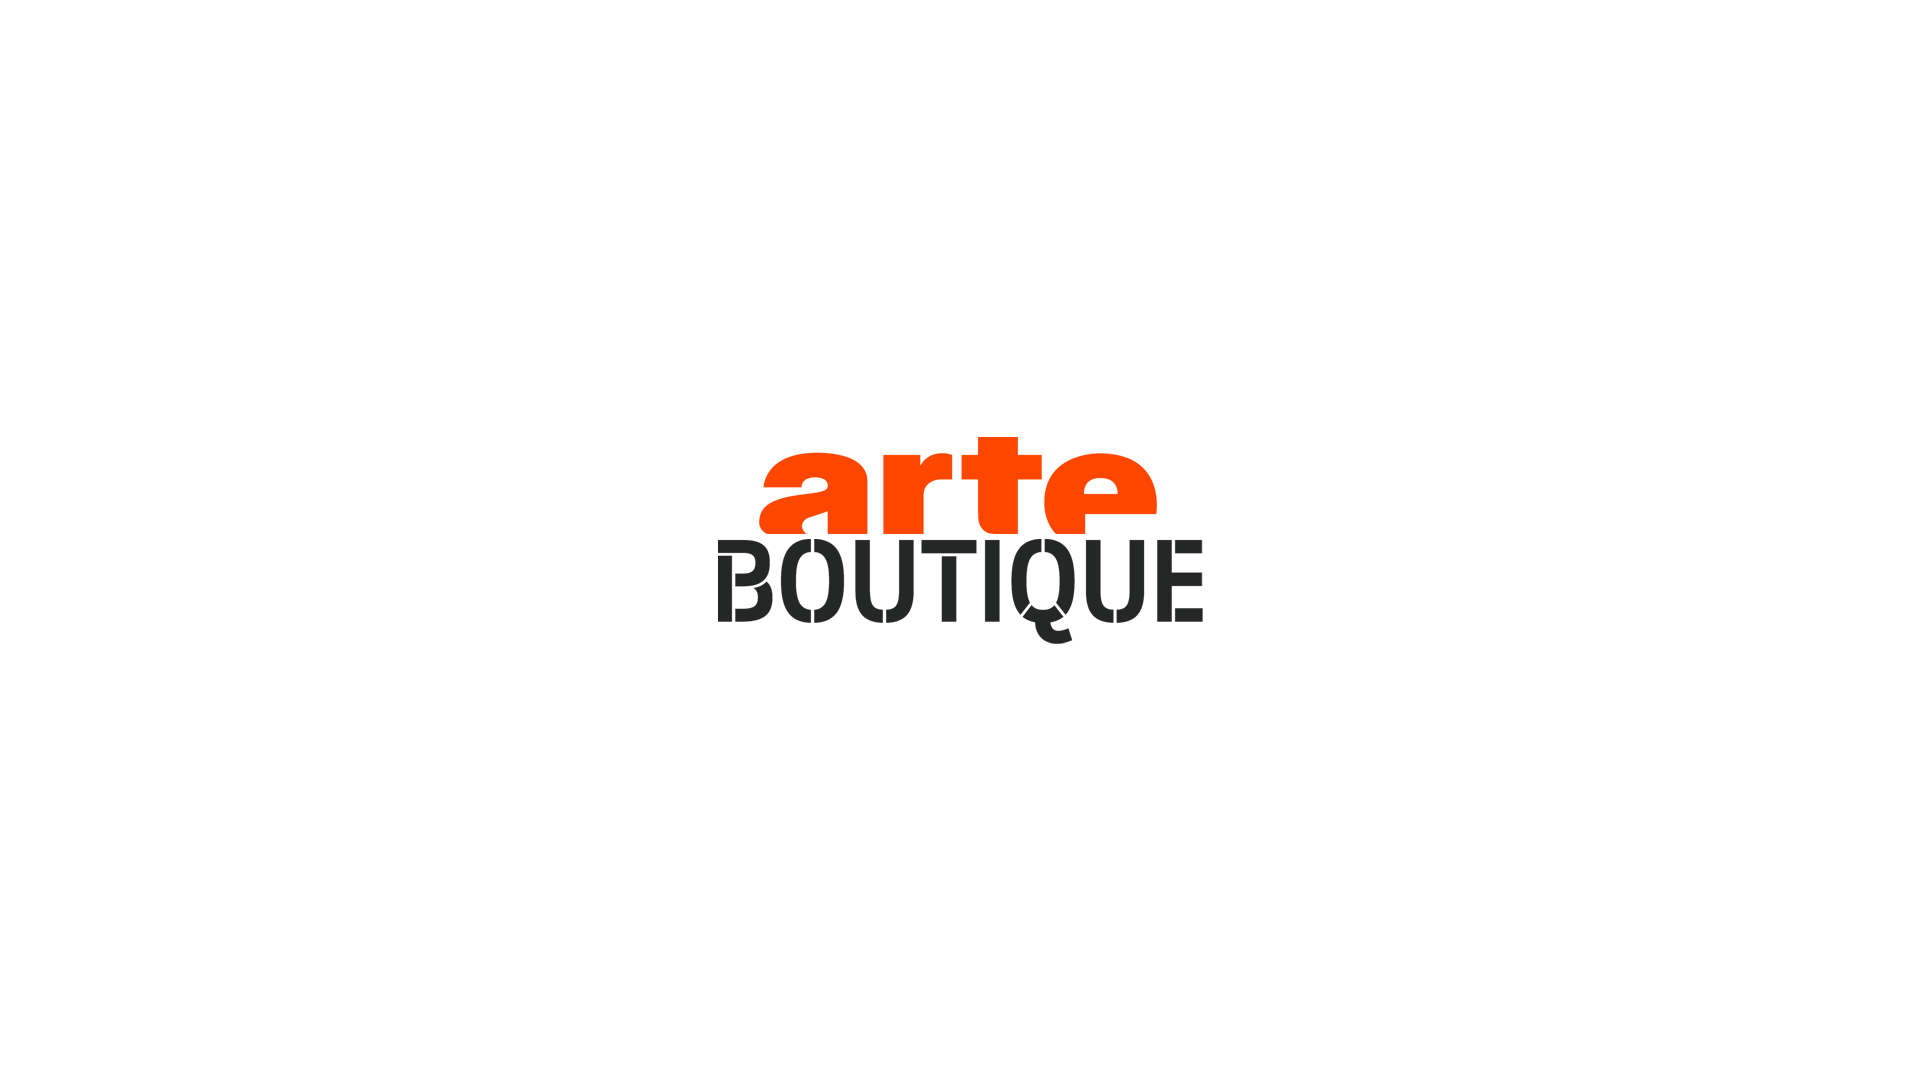 Arte Boutique Ibi Arte Boutique Arte Studio